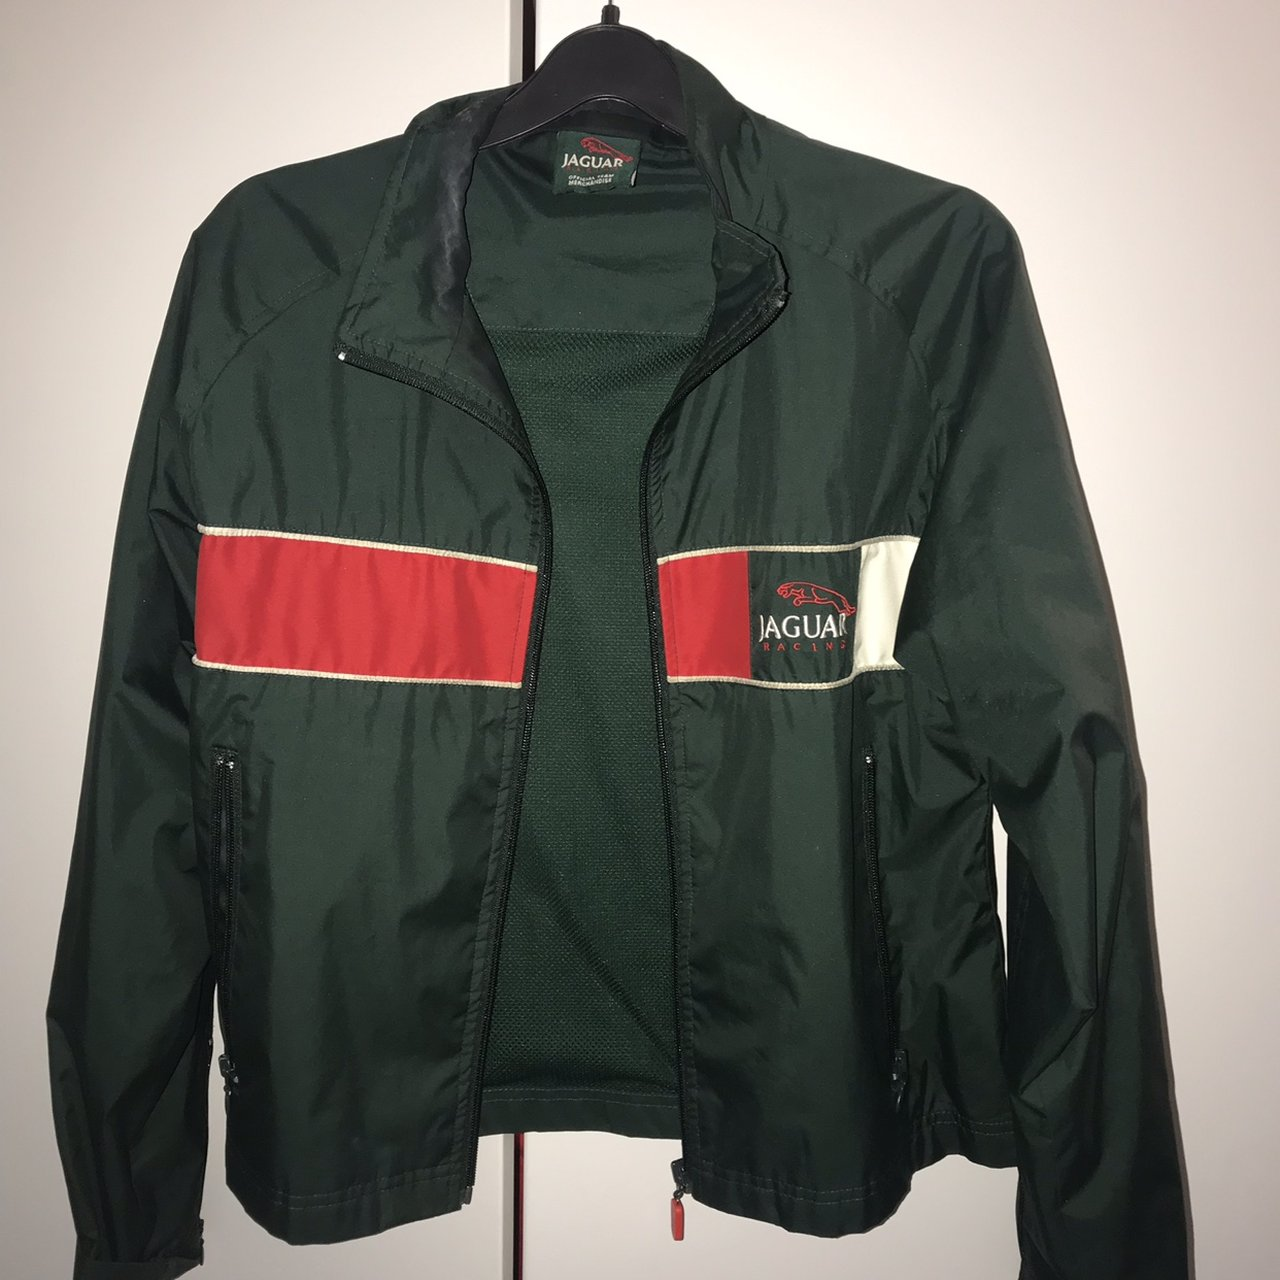 e48d17cf2899b9 Jaguar Racing vintage windbreaker jacket. Found in a vintage - Depop